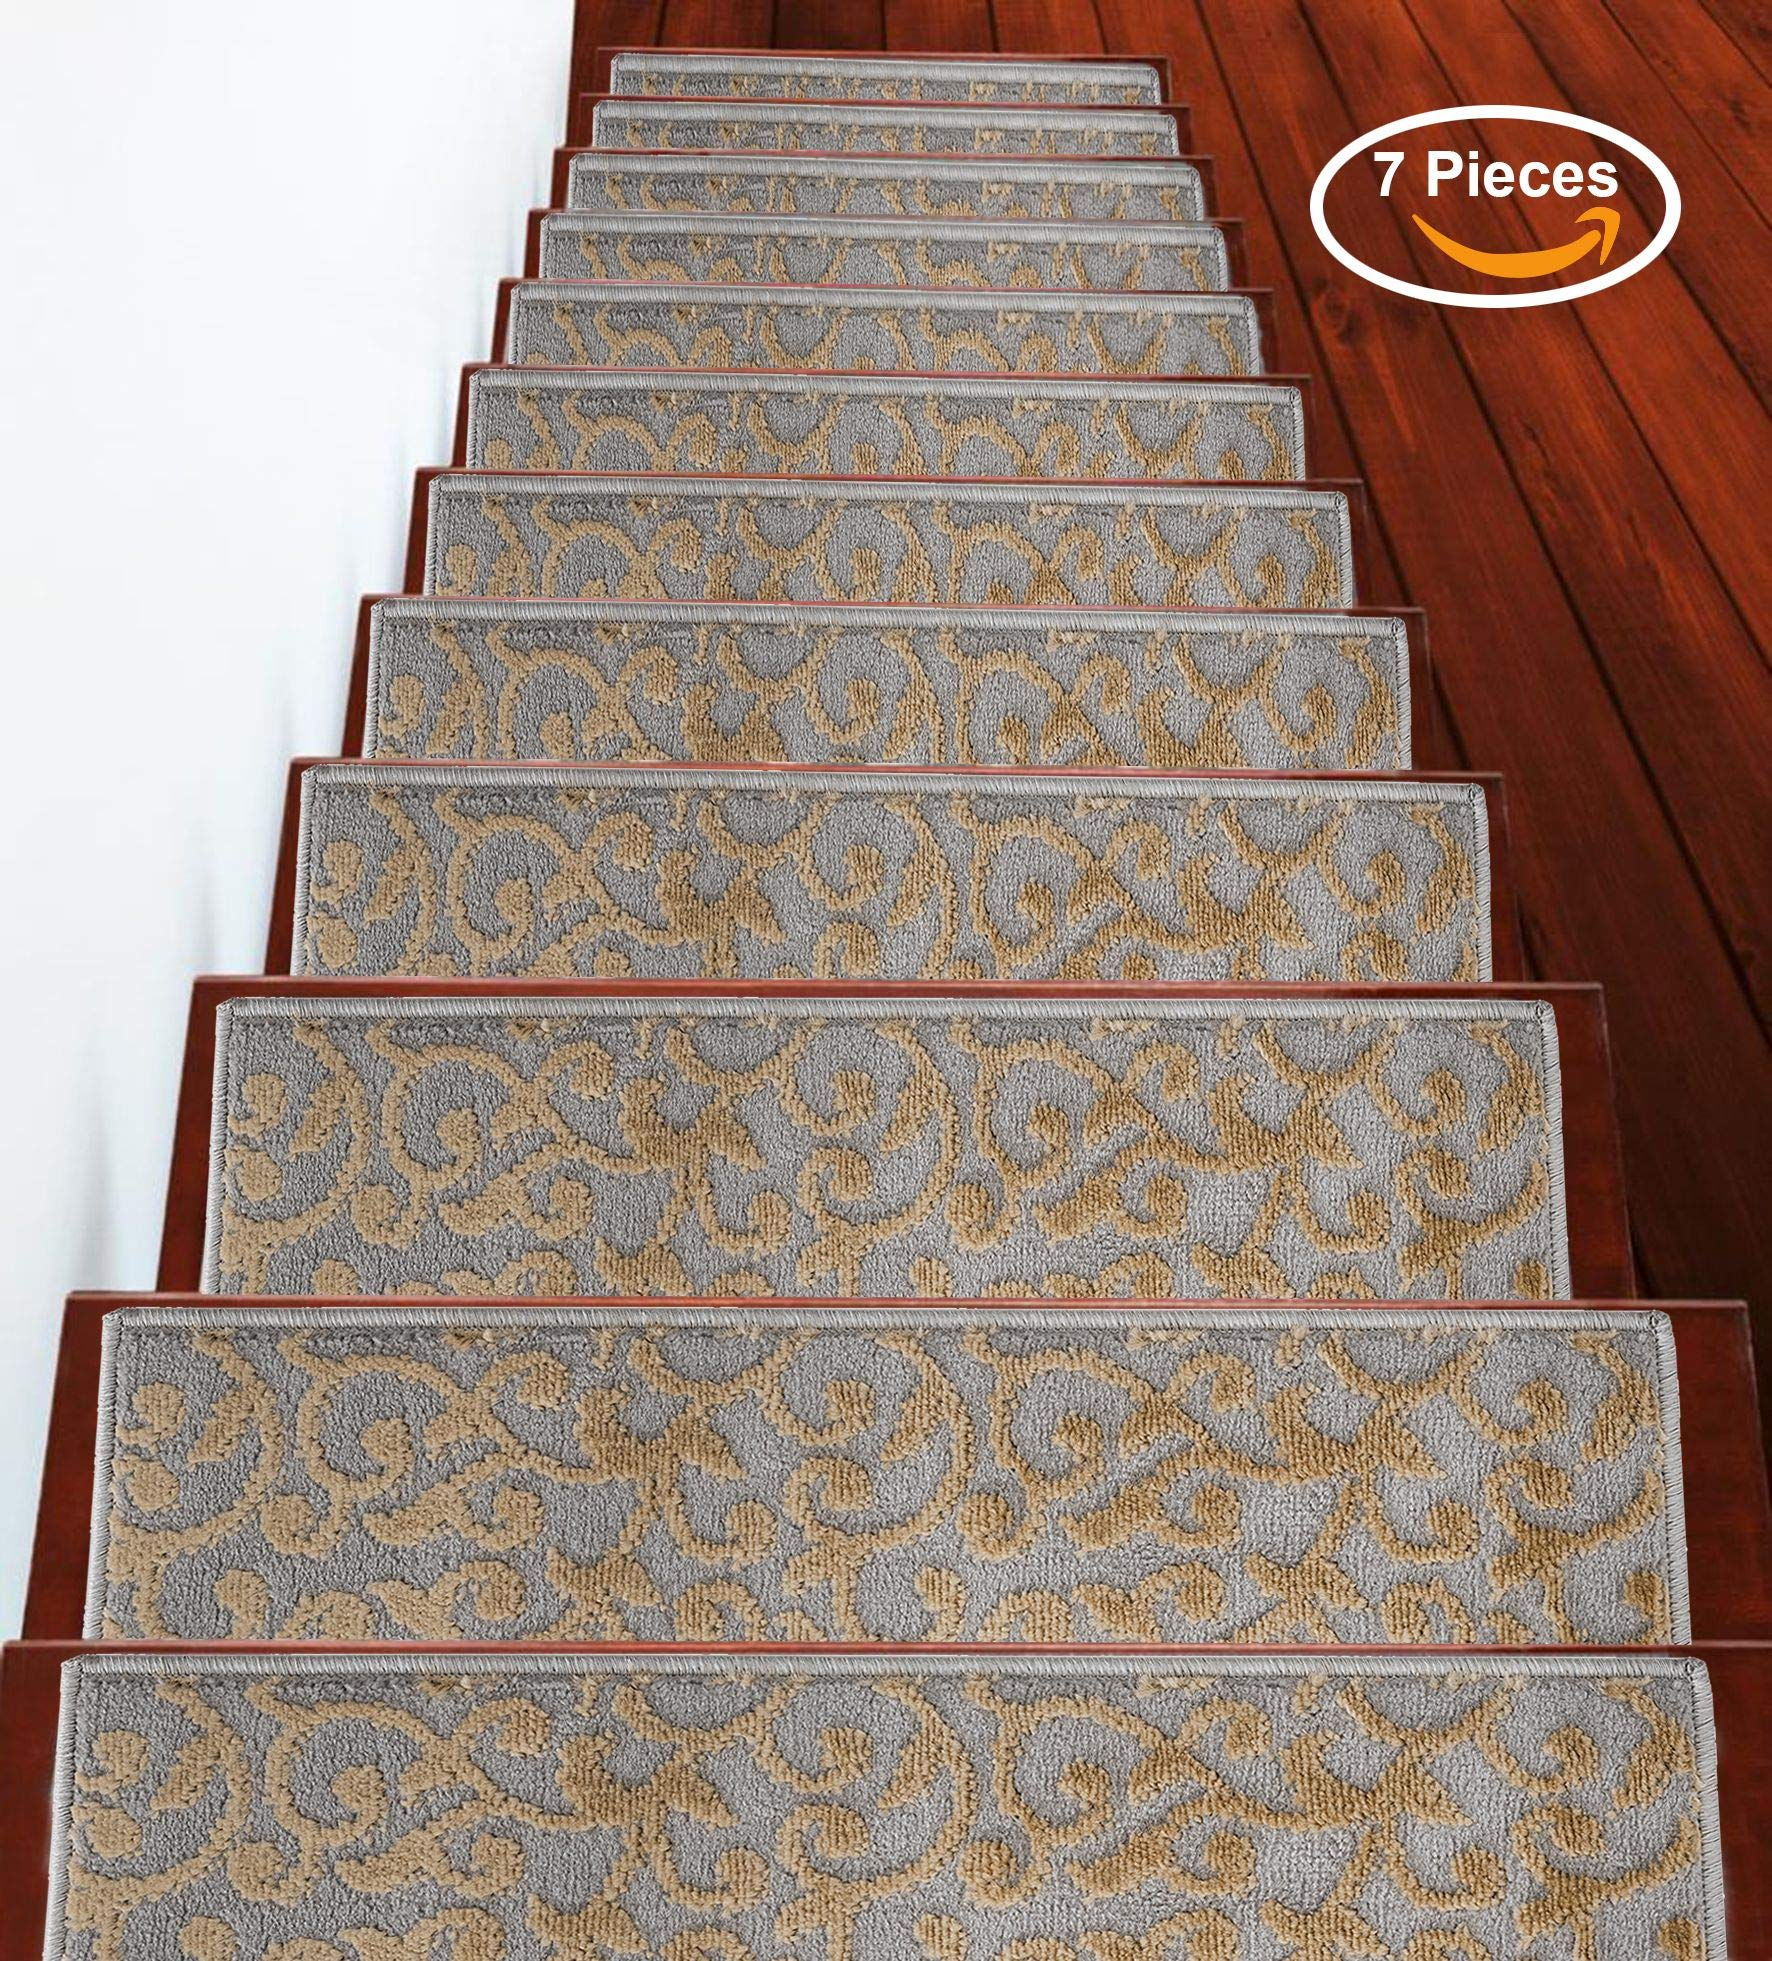 Stair Treads Leaves Collection Contemporary, Cozy, Vibrant and Soft Stair Treads, 9'' x 28'', Beige, Pack of 7 [100% Polypropylene] Tape Applied